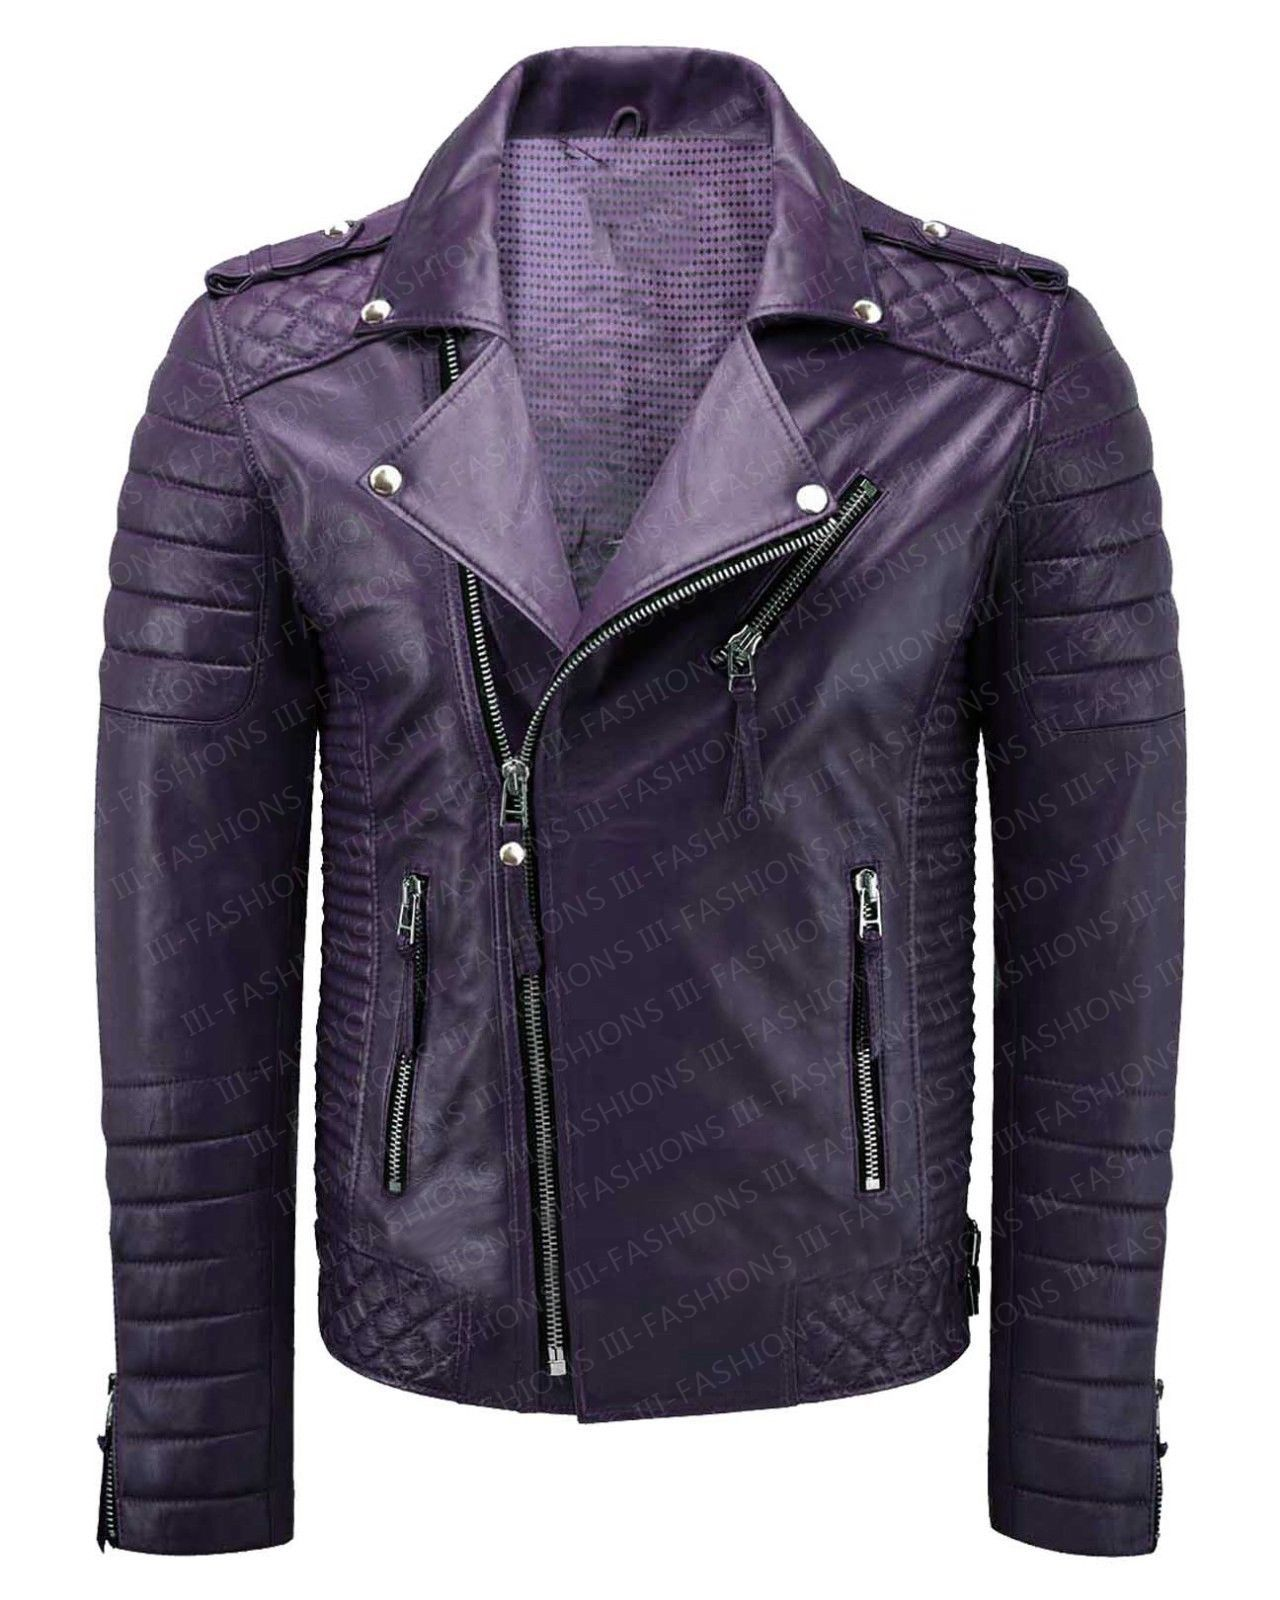 Get Men's Purple Quilted Motorcycle Brando Leather Jacket